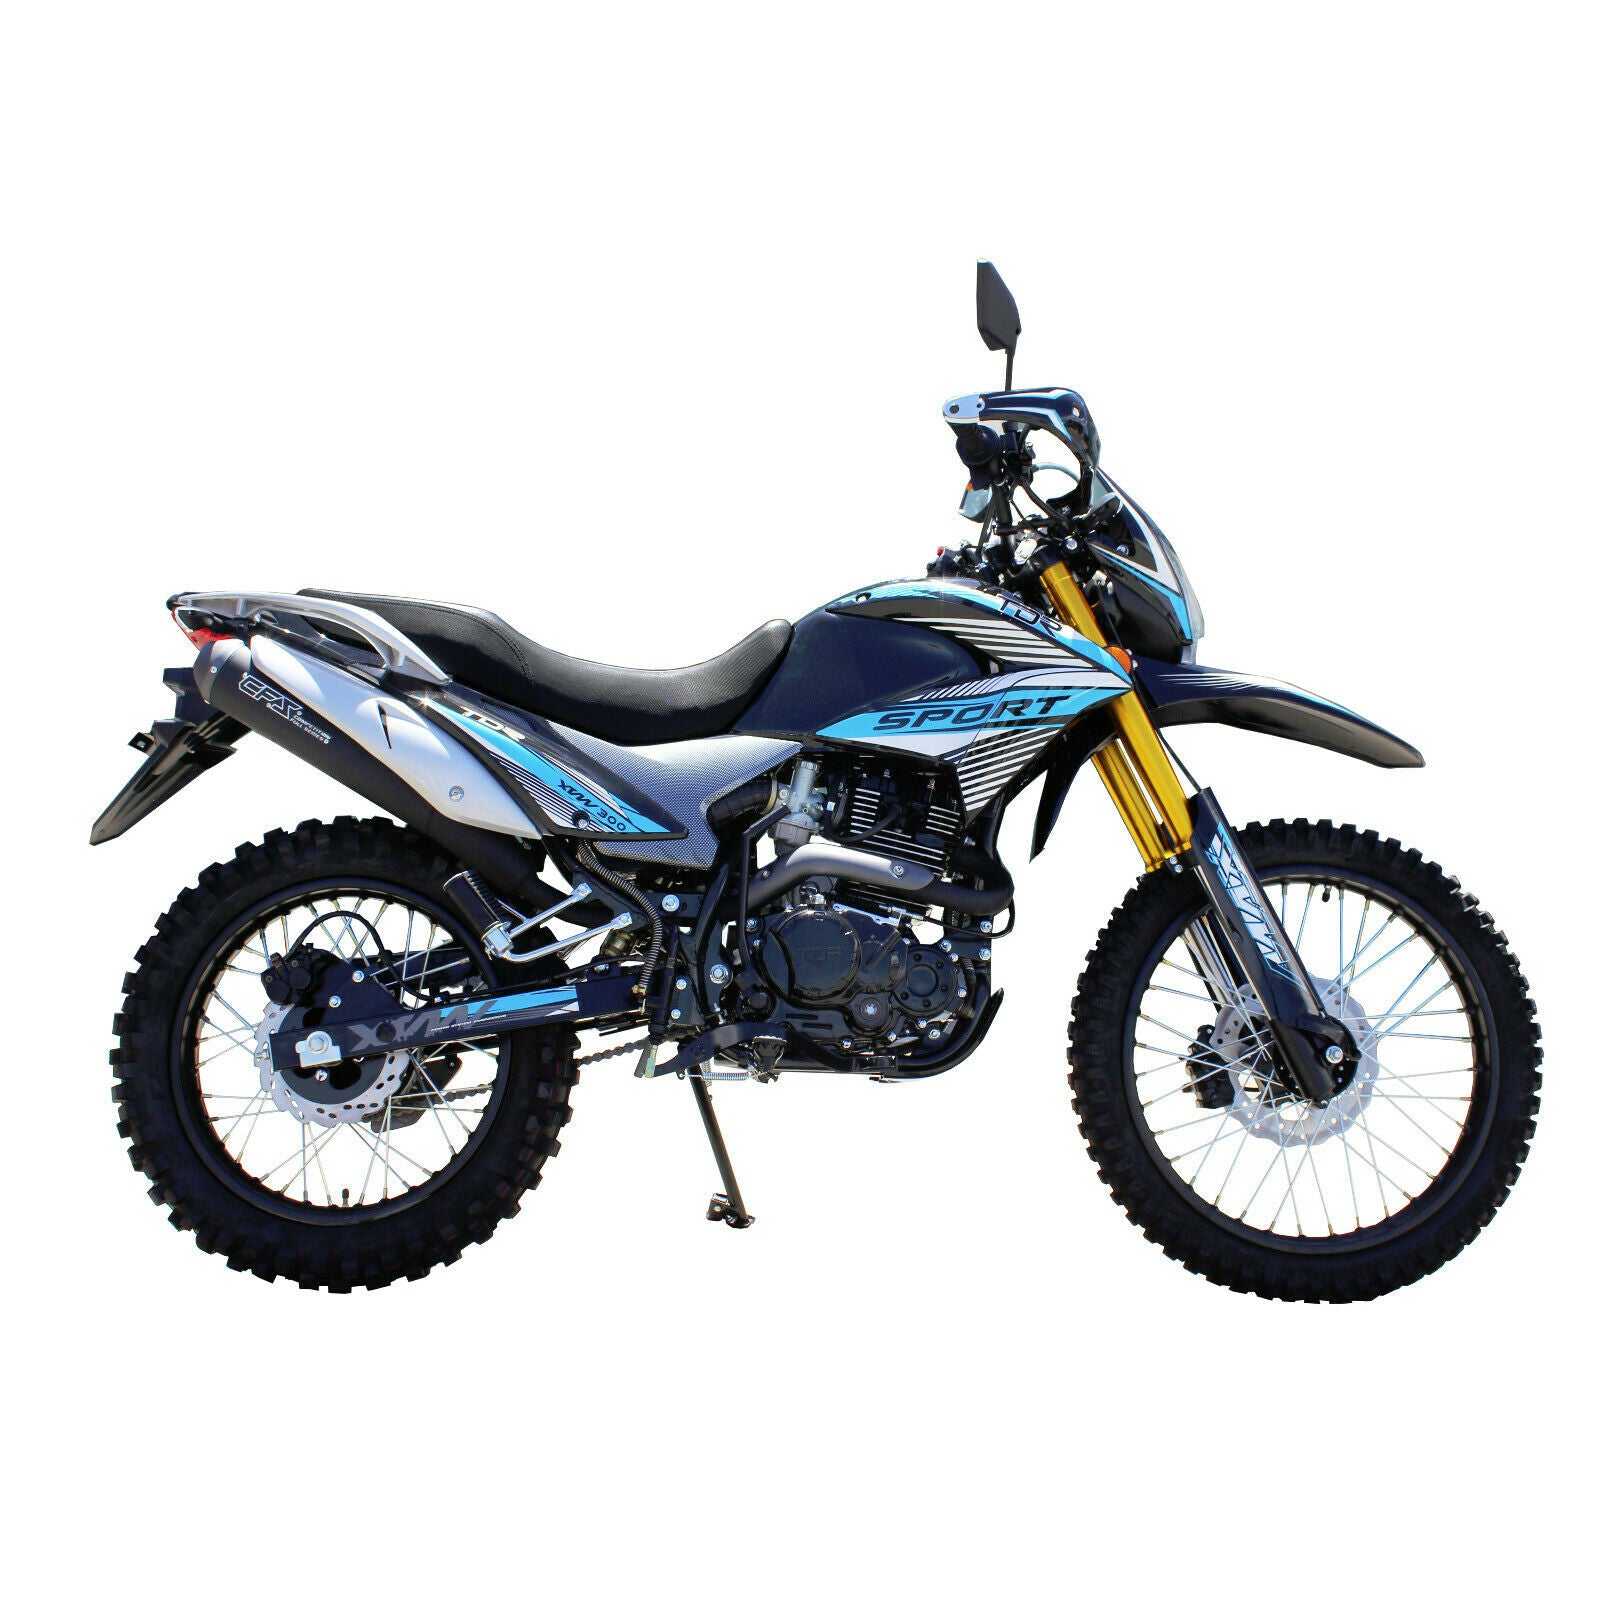 Blue - TDR 300cc AG BIKE Motocross Motorcycle Off-Road Dirt Pit Farm Bike, 1-Cylinder, 4-Stroke Oil-Cooled, Electric / Kick Start (Tax Invoice Included)